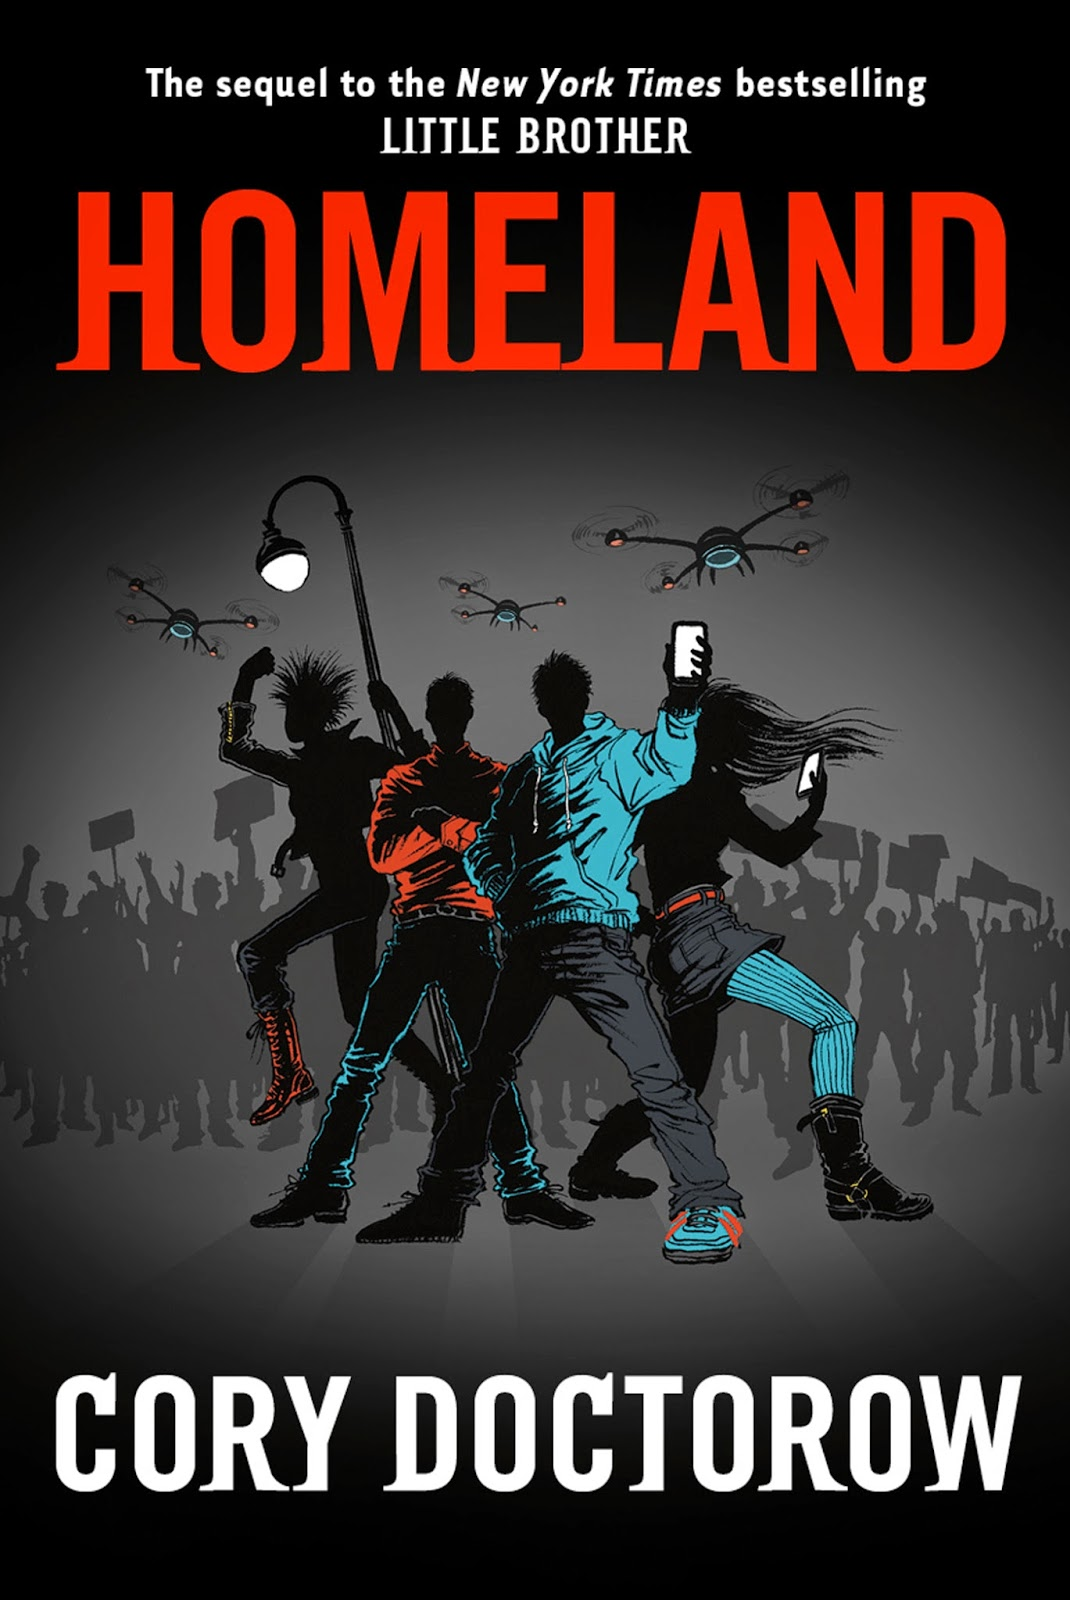 http://discover.halifaxpubliclibraries.ca/?q=title:homeland%20author:doctorow